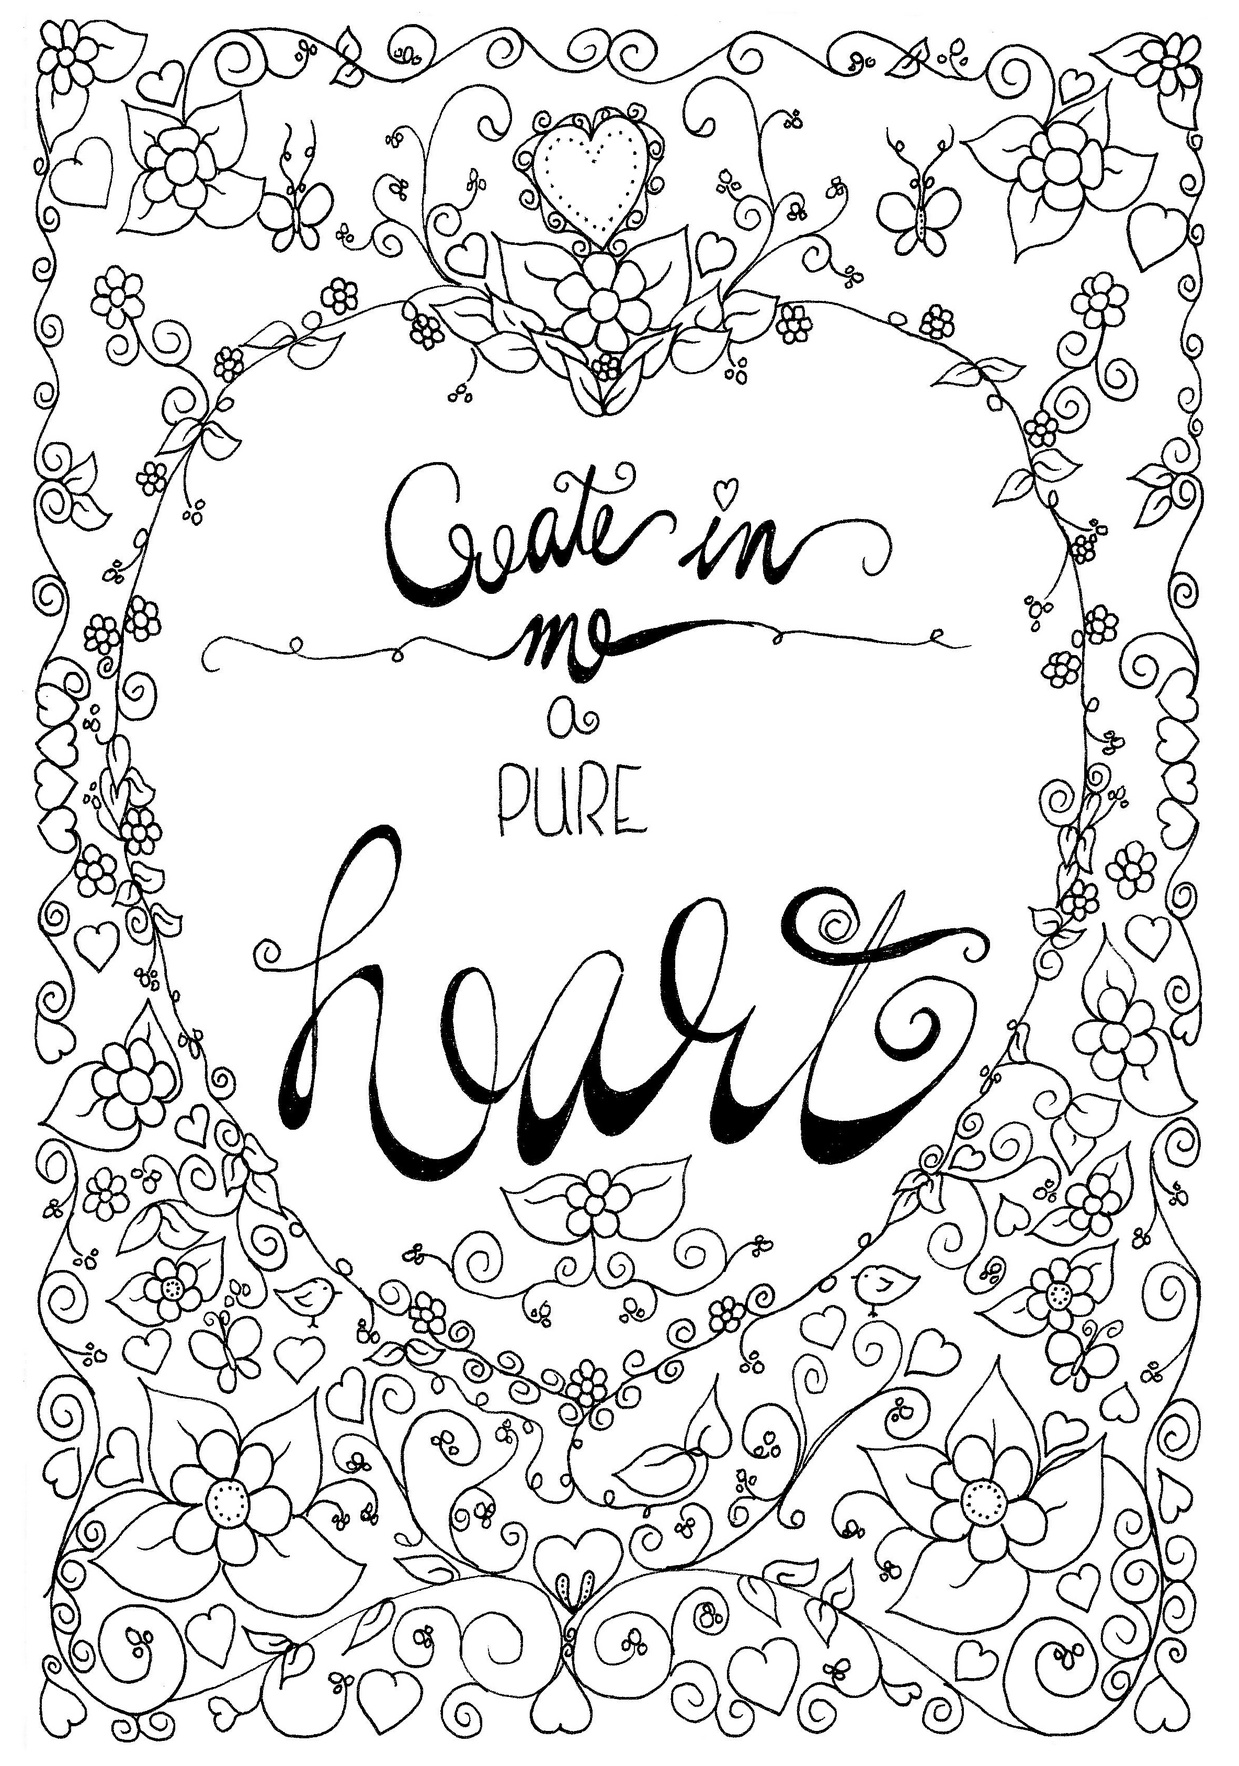 Pure Heart Coloring Page